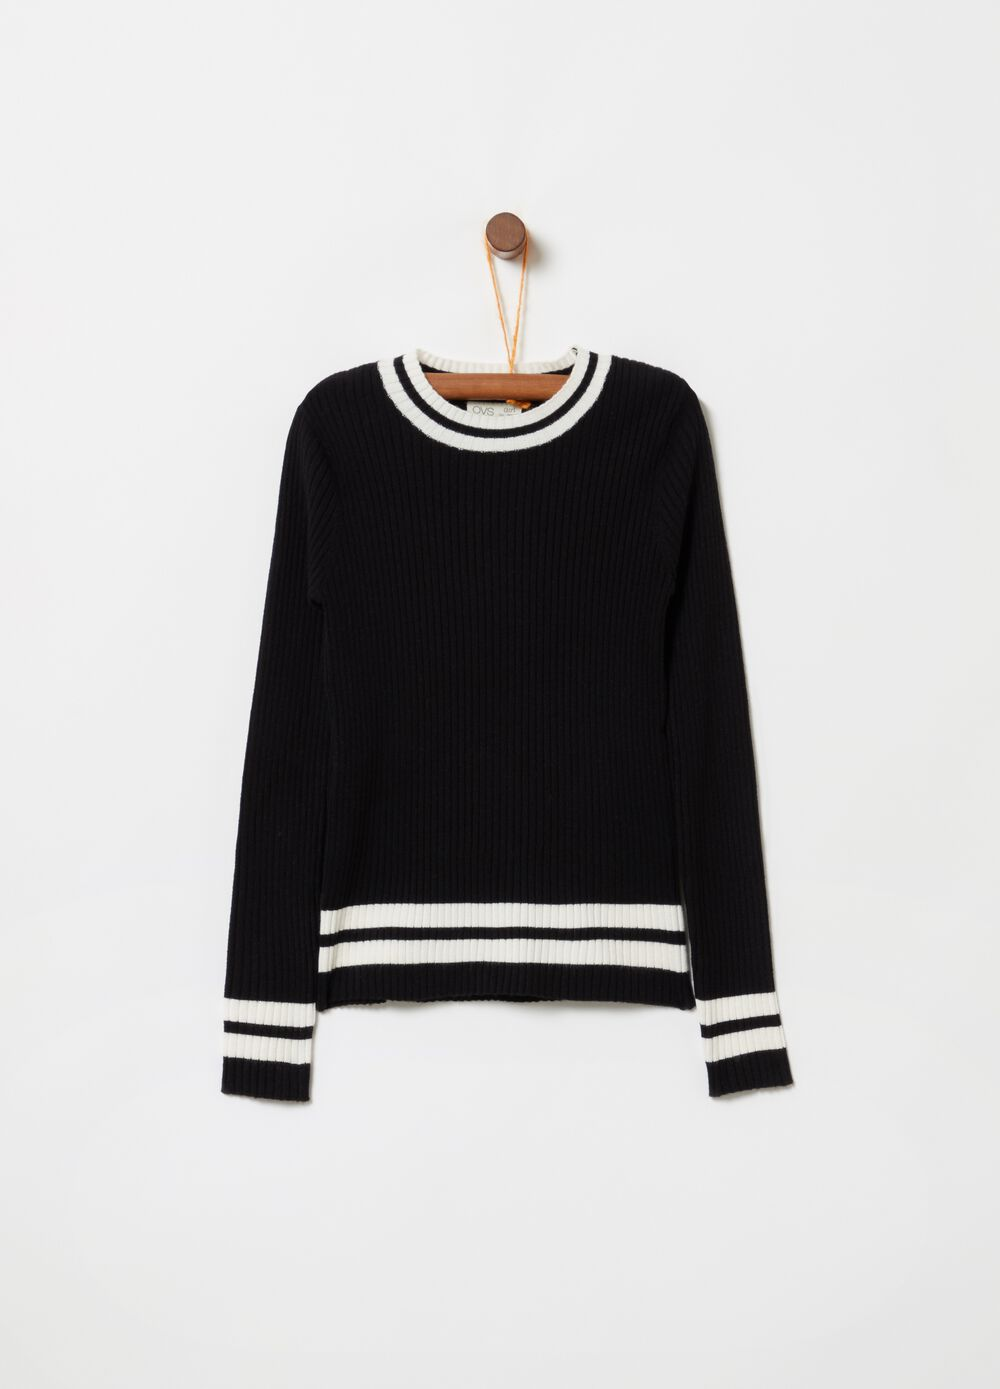 Long-sleeved knitted top with print